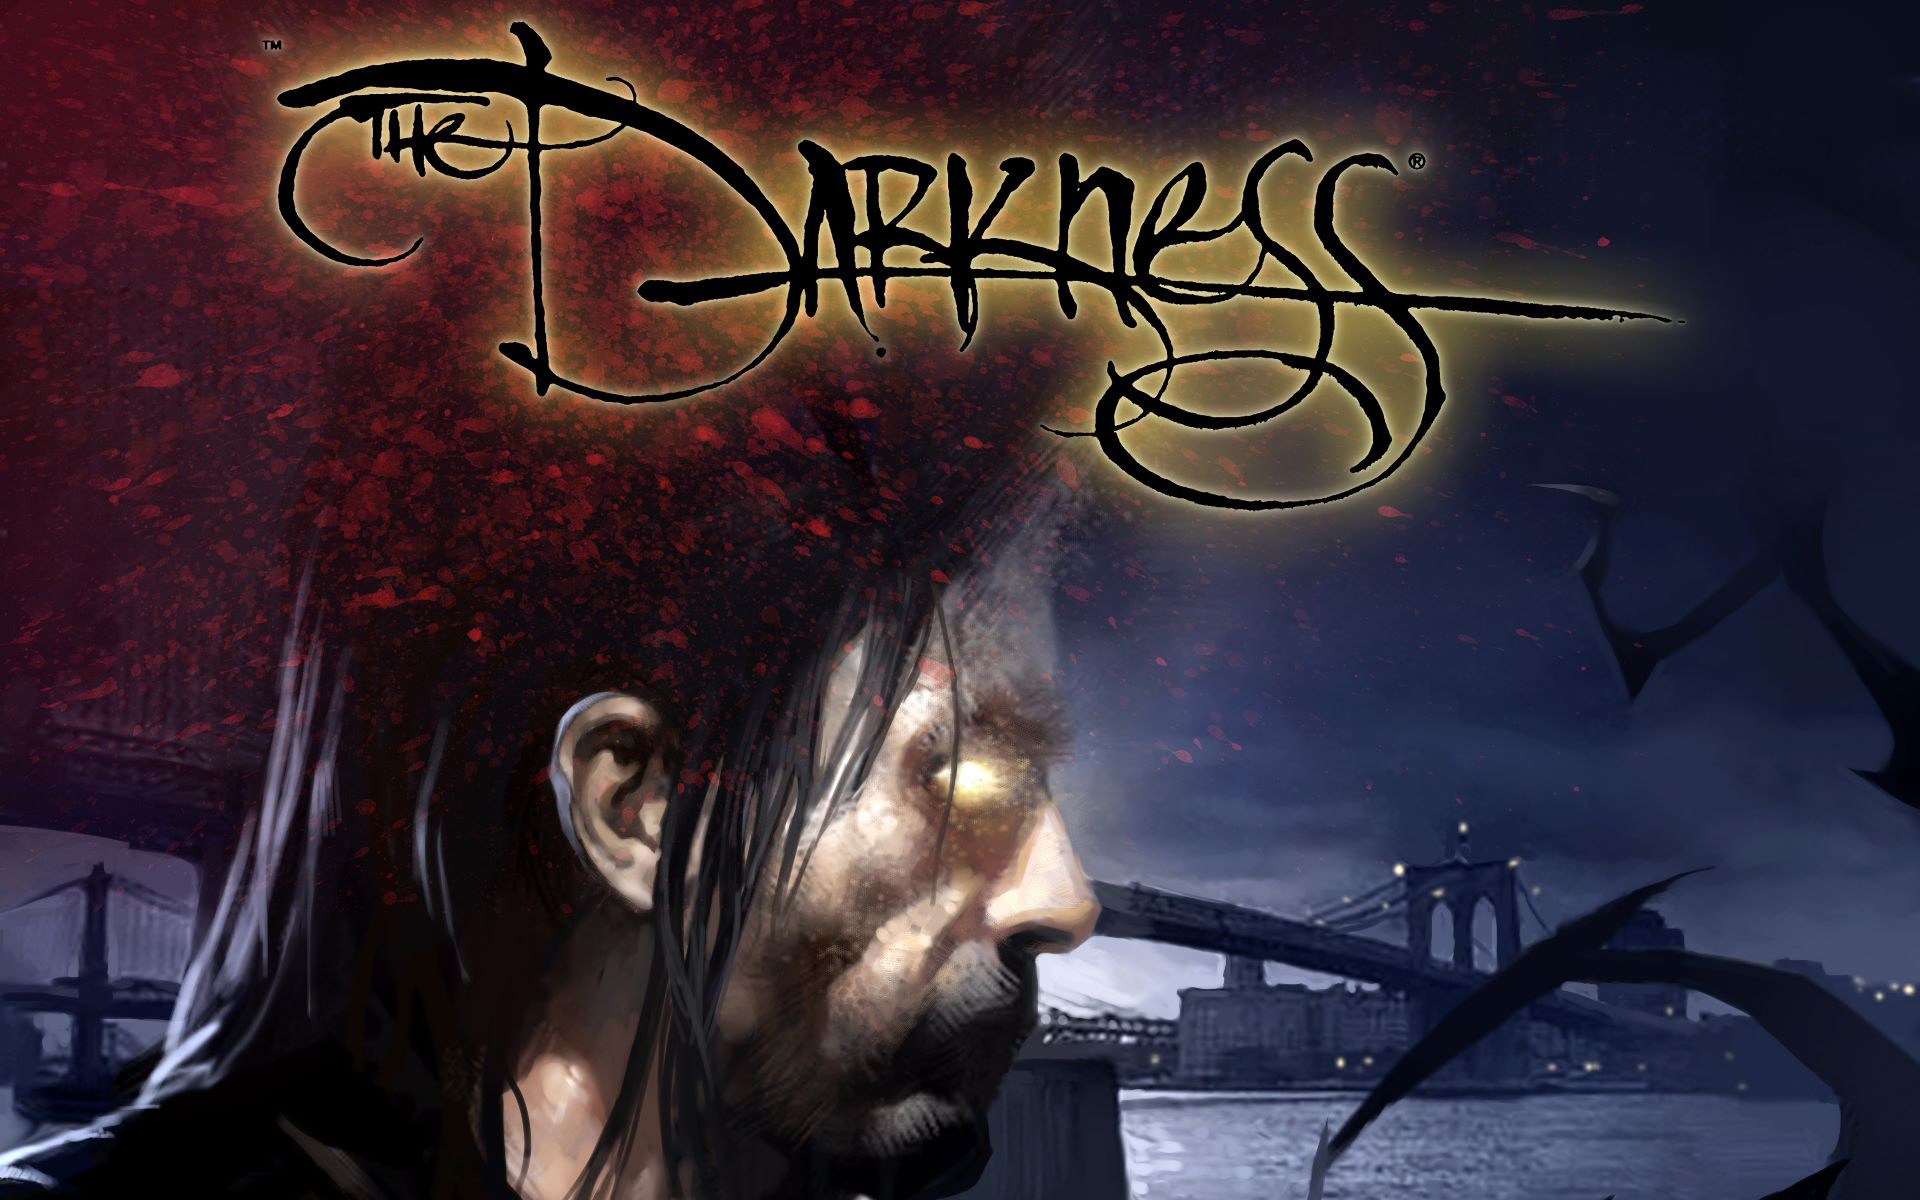 The Darkness Wallpaper in 1920x1200